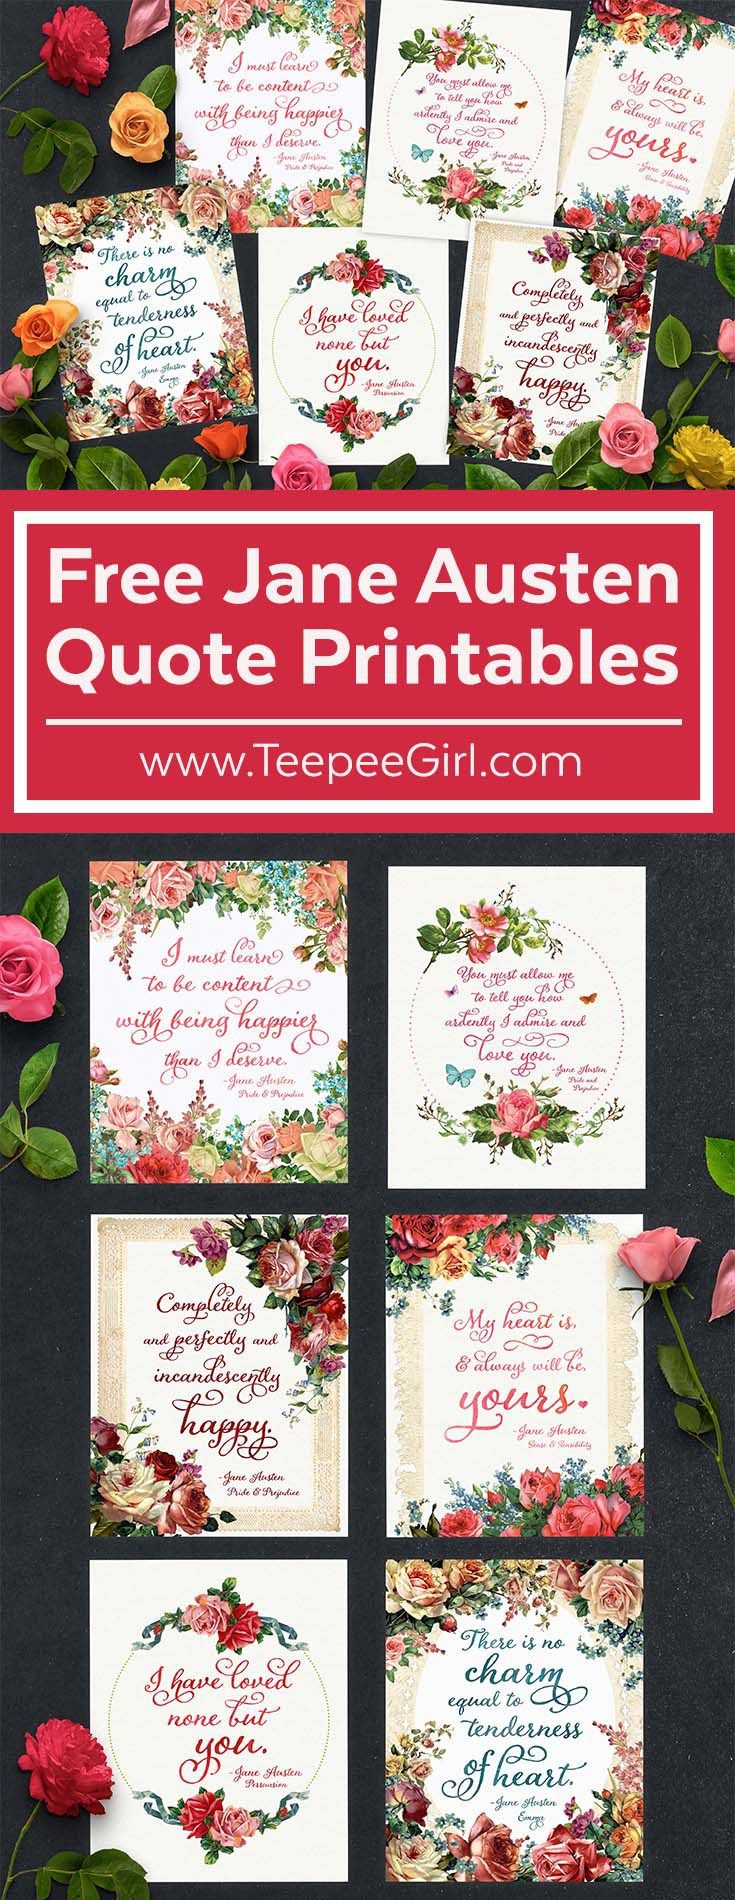 These 6 FREE printables all feature beloved (and romantic!) quotes from Jane Austen! They are perfect for Valentines' Day, bridal showers, and any other celebration of love and romance! Click here to get these free printable quotes! www.TeepeeGirl.com